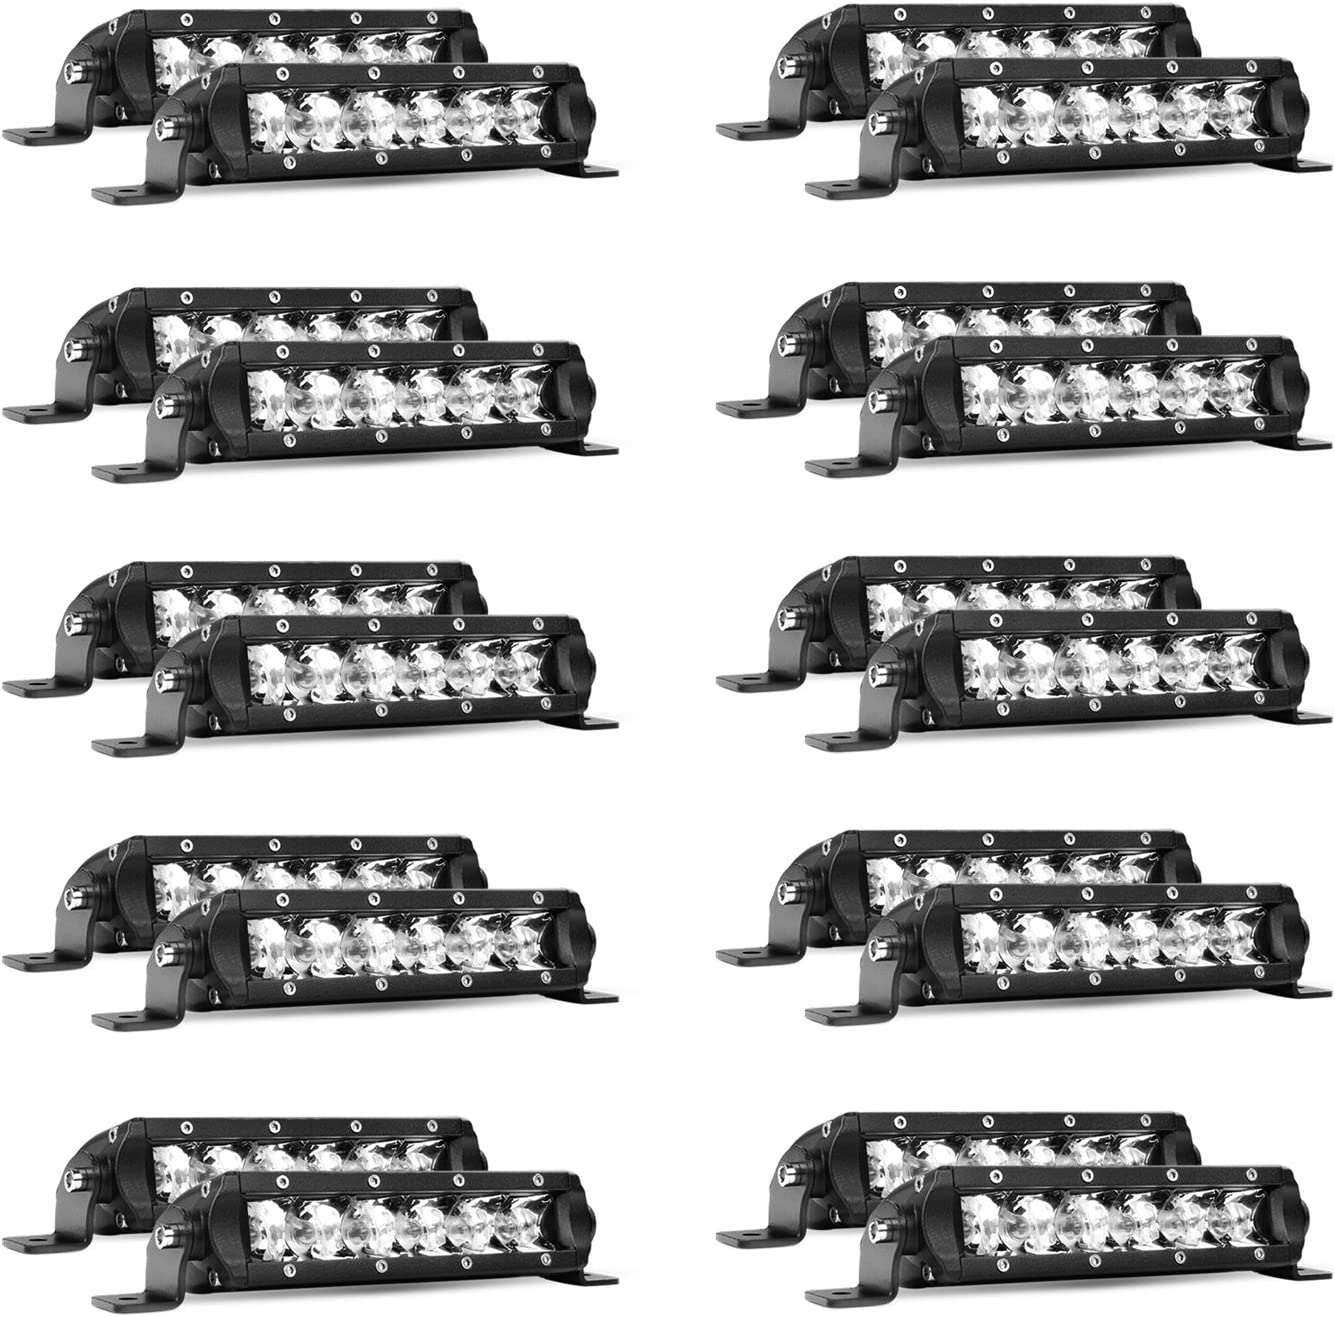 Led Light Bar Nilight Super Slim 20PCS 7Inch 30W Spot Driving Light Single Row Off Road led Lights for Jeep - 2 Style Mounting Brackets, 2 years Warranty